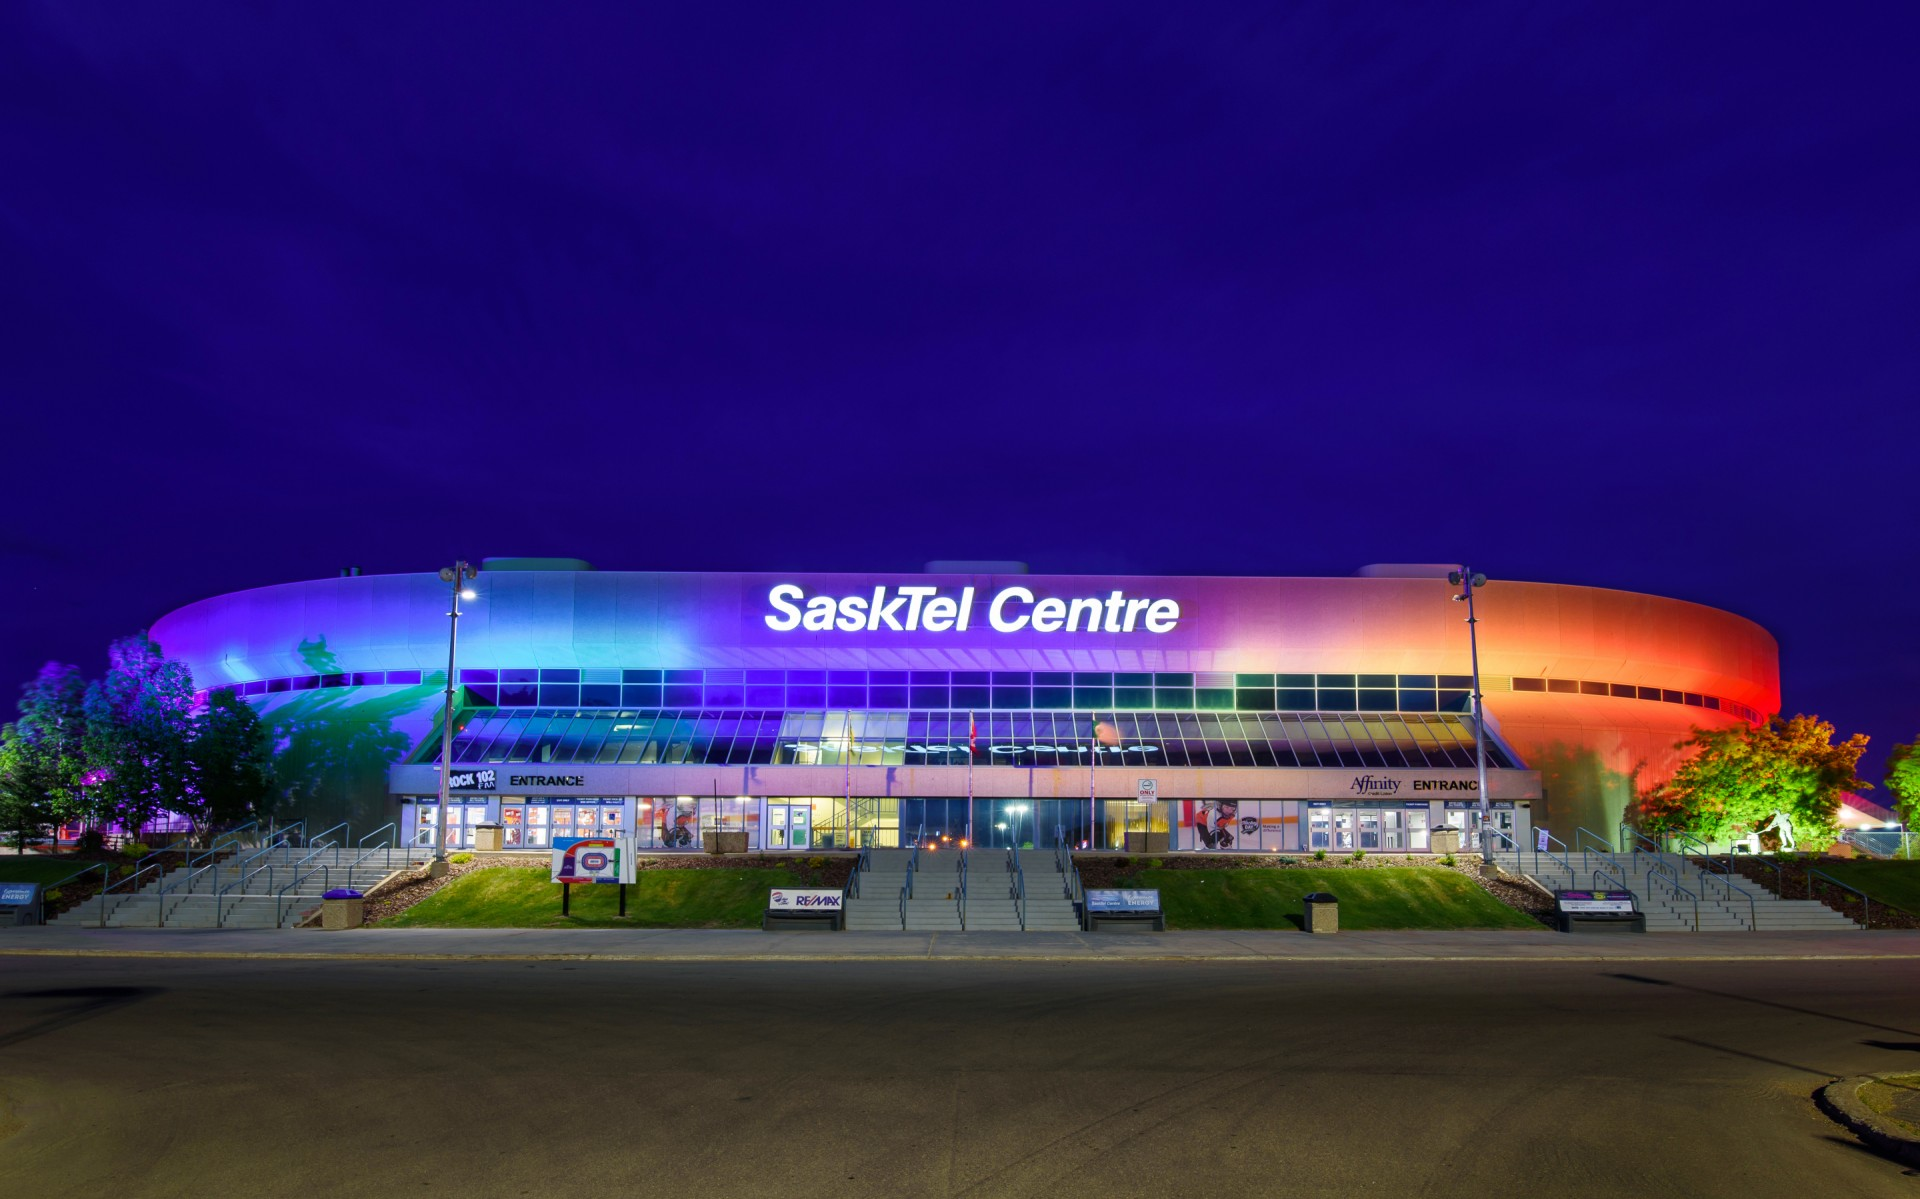 """We were always a focal point for the city and province, but the new light system took us to a new level,'' says John Howden, Director of Business Development at SaskTel Centre."